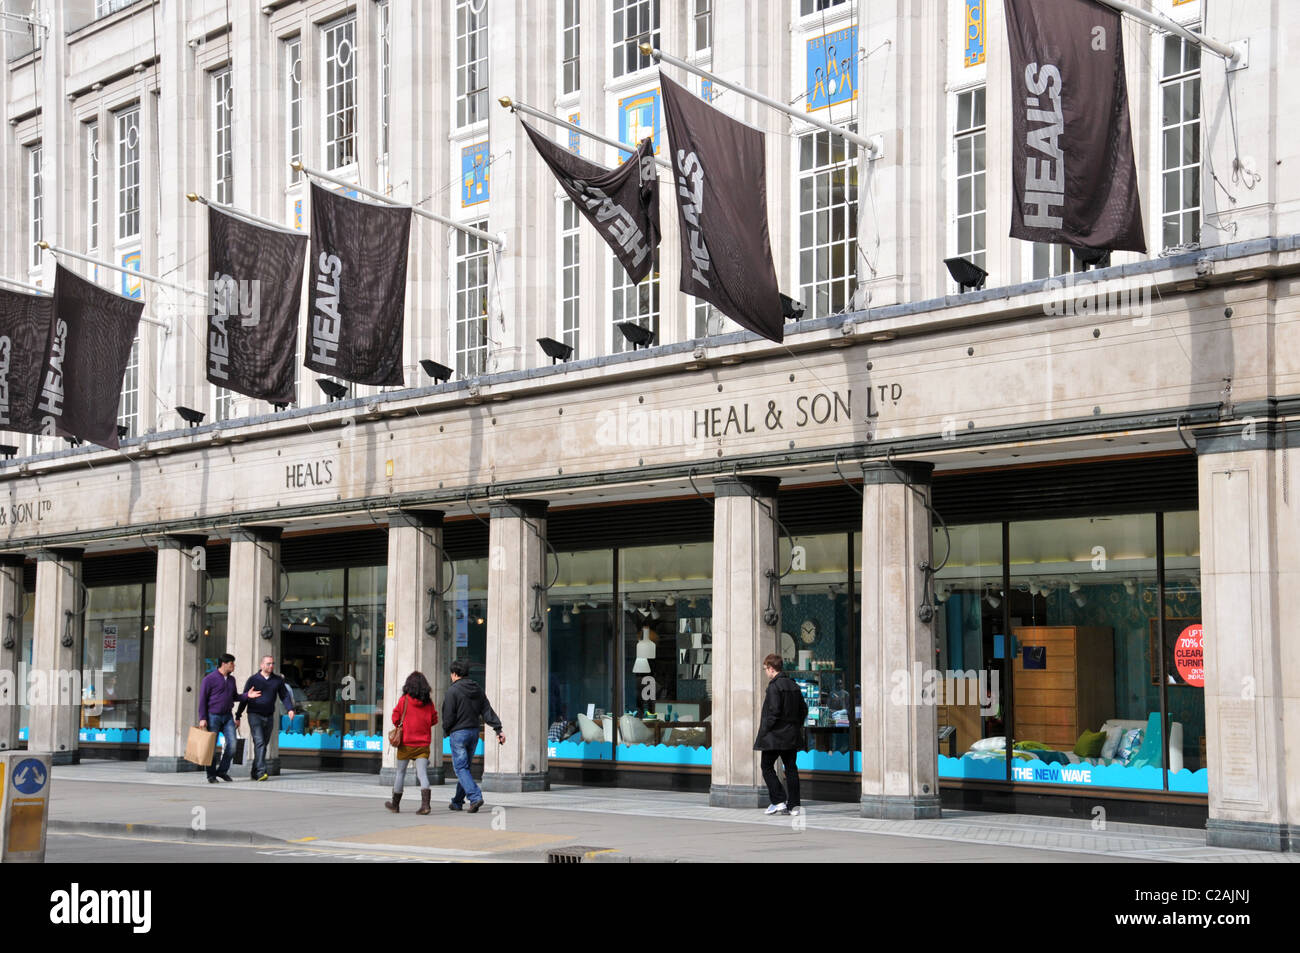 heals heal son ltd furniture store tottenham court road furnishings stock photo royalty free